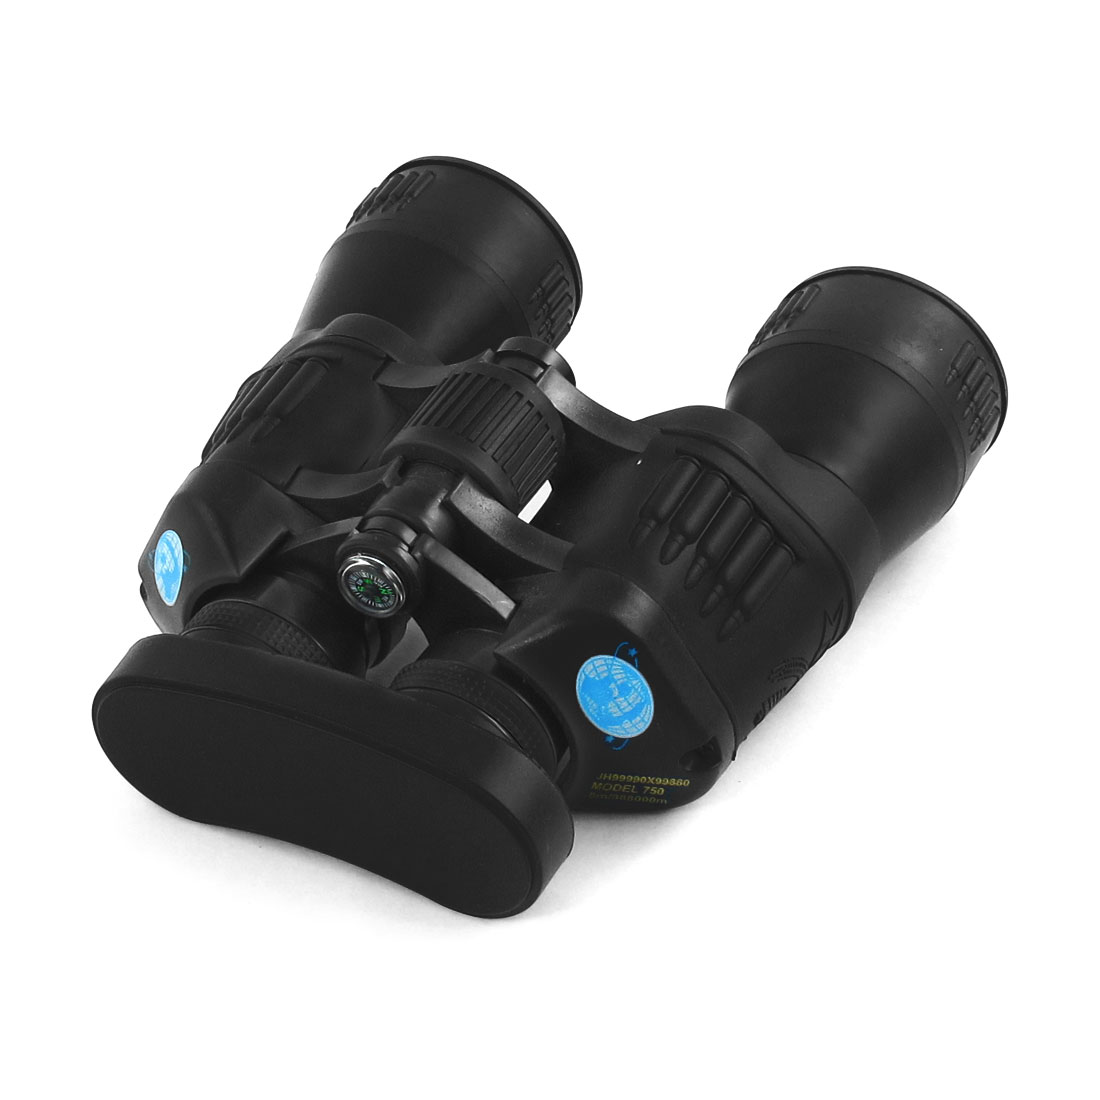 Plastic Black Traveling Climbing Adjustable Focal Length Binoculars Telescope